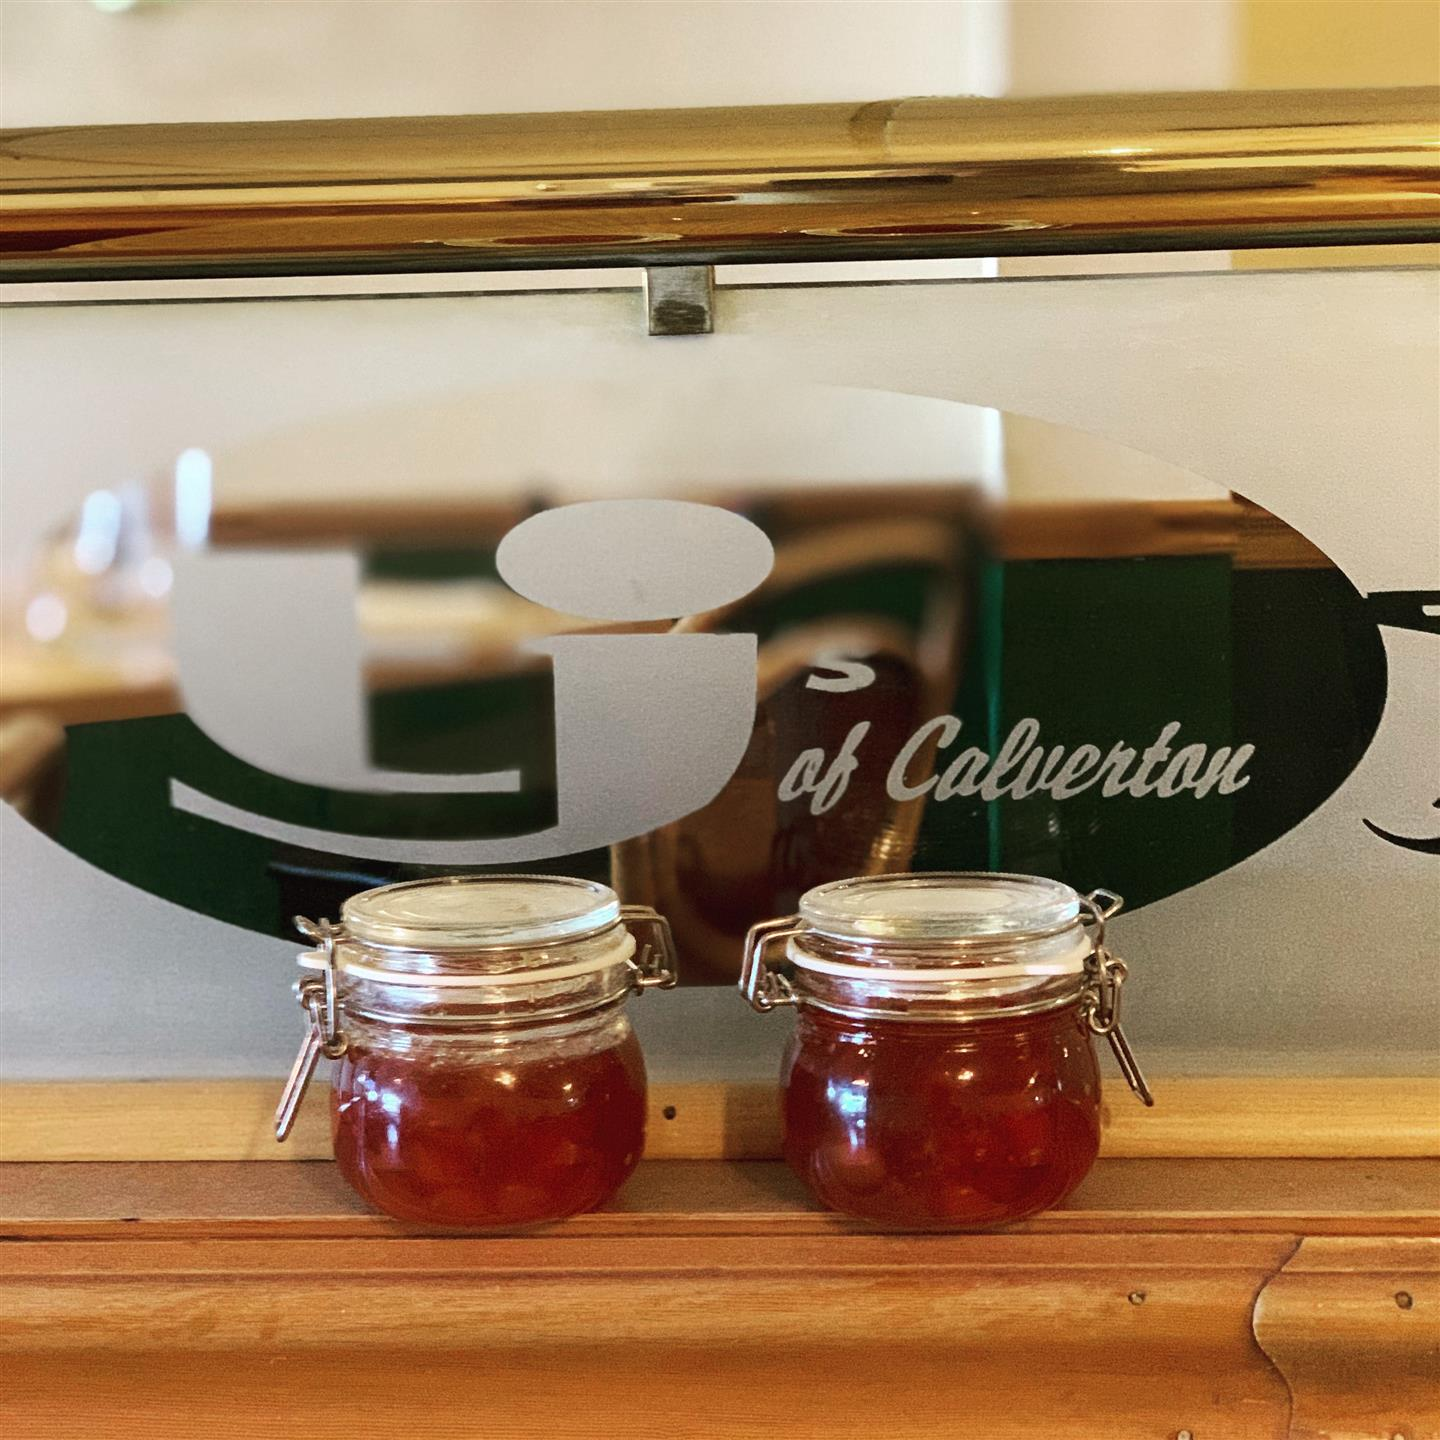 jam in jars sitting on the ledge in front of the logo